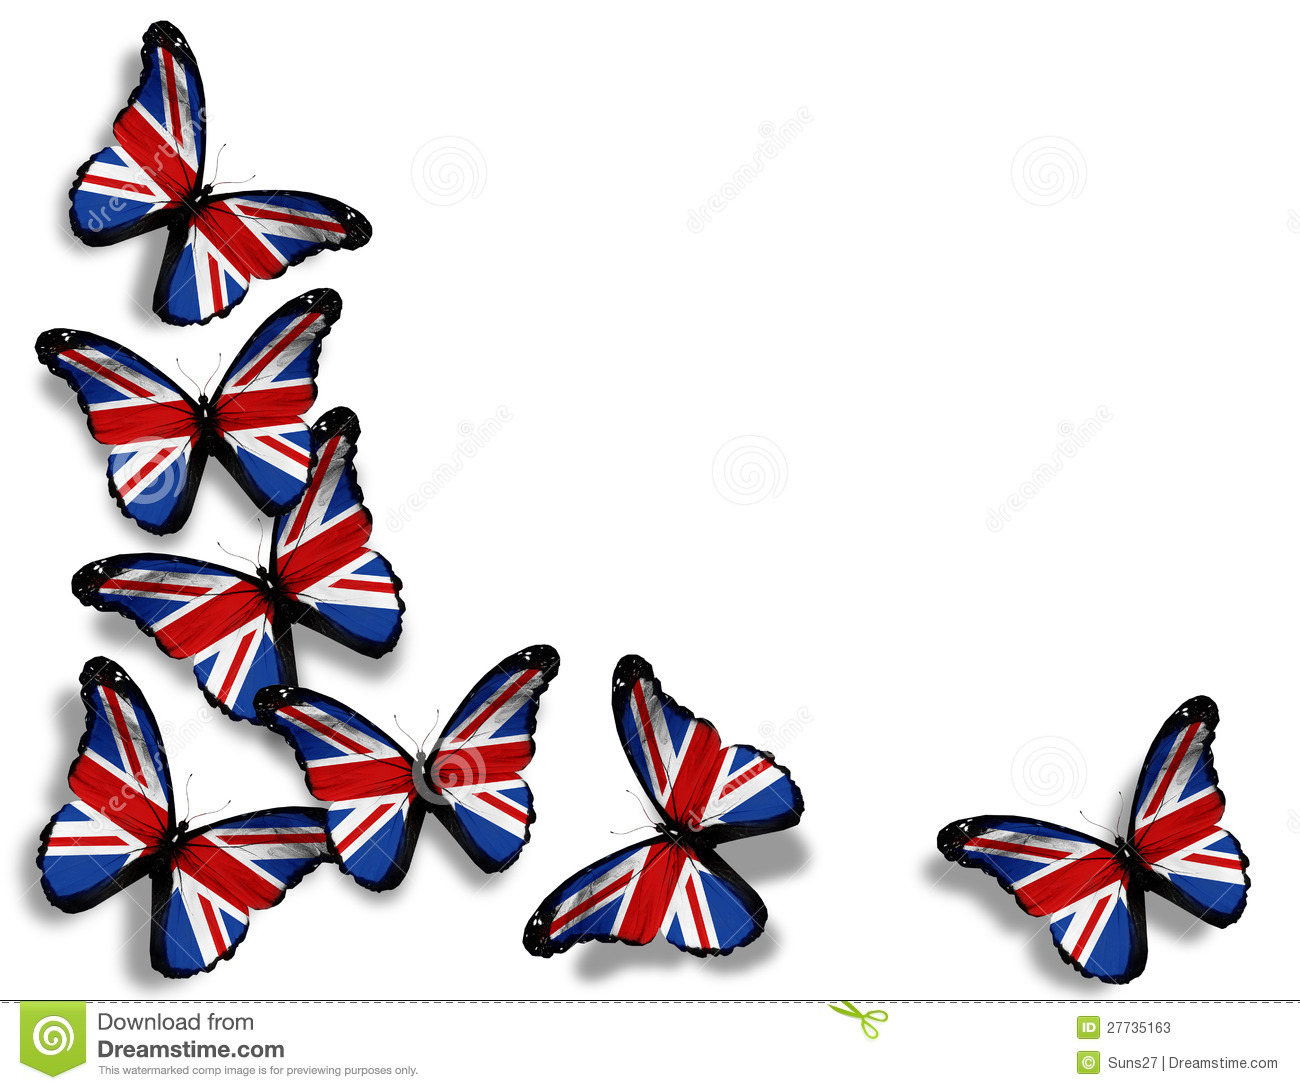 C:\Users\asus\Pictures\english-flag-butterflies-white-27735163.jpg